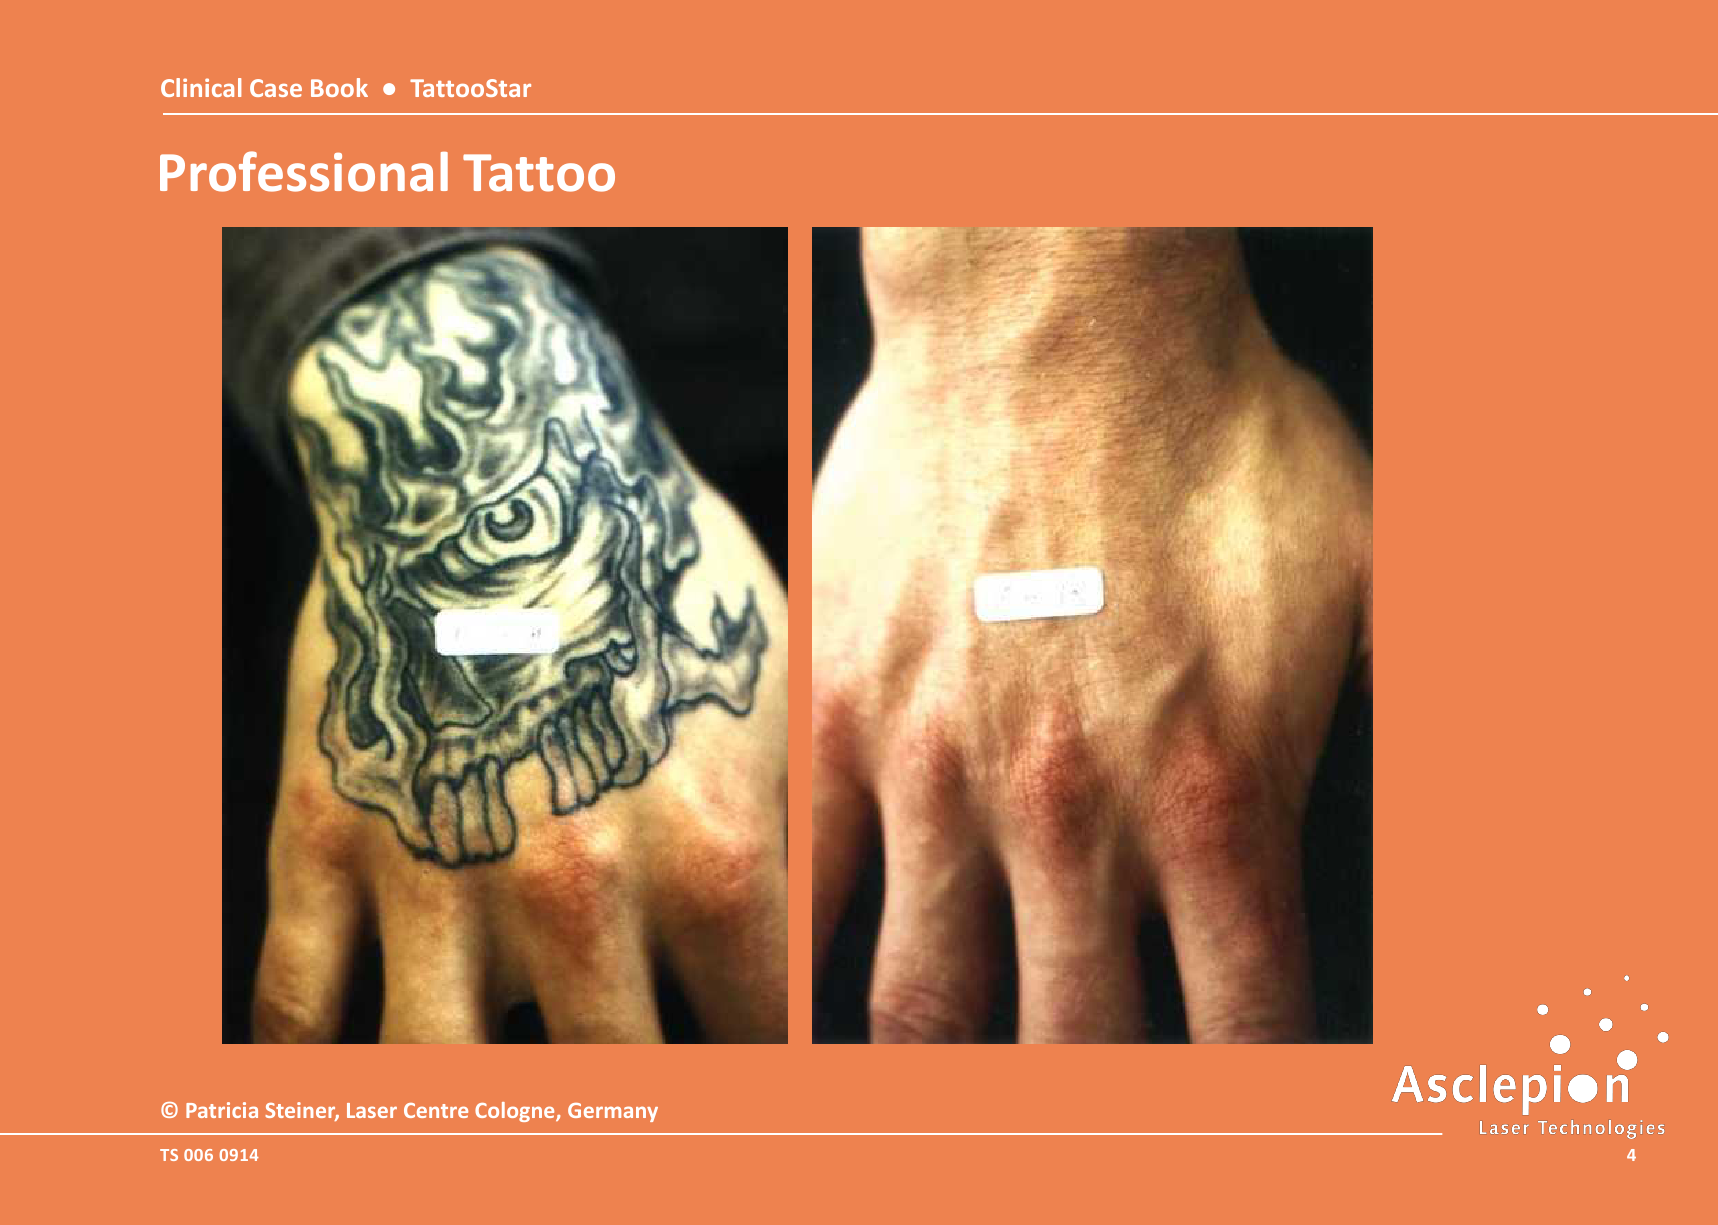 Clinical-Case-Book-2014-TattooStar_09144